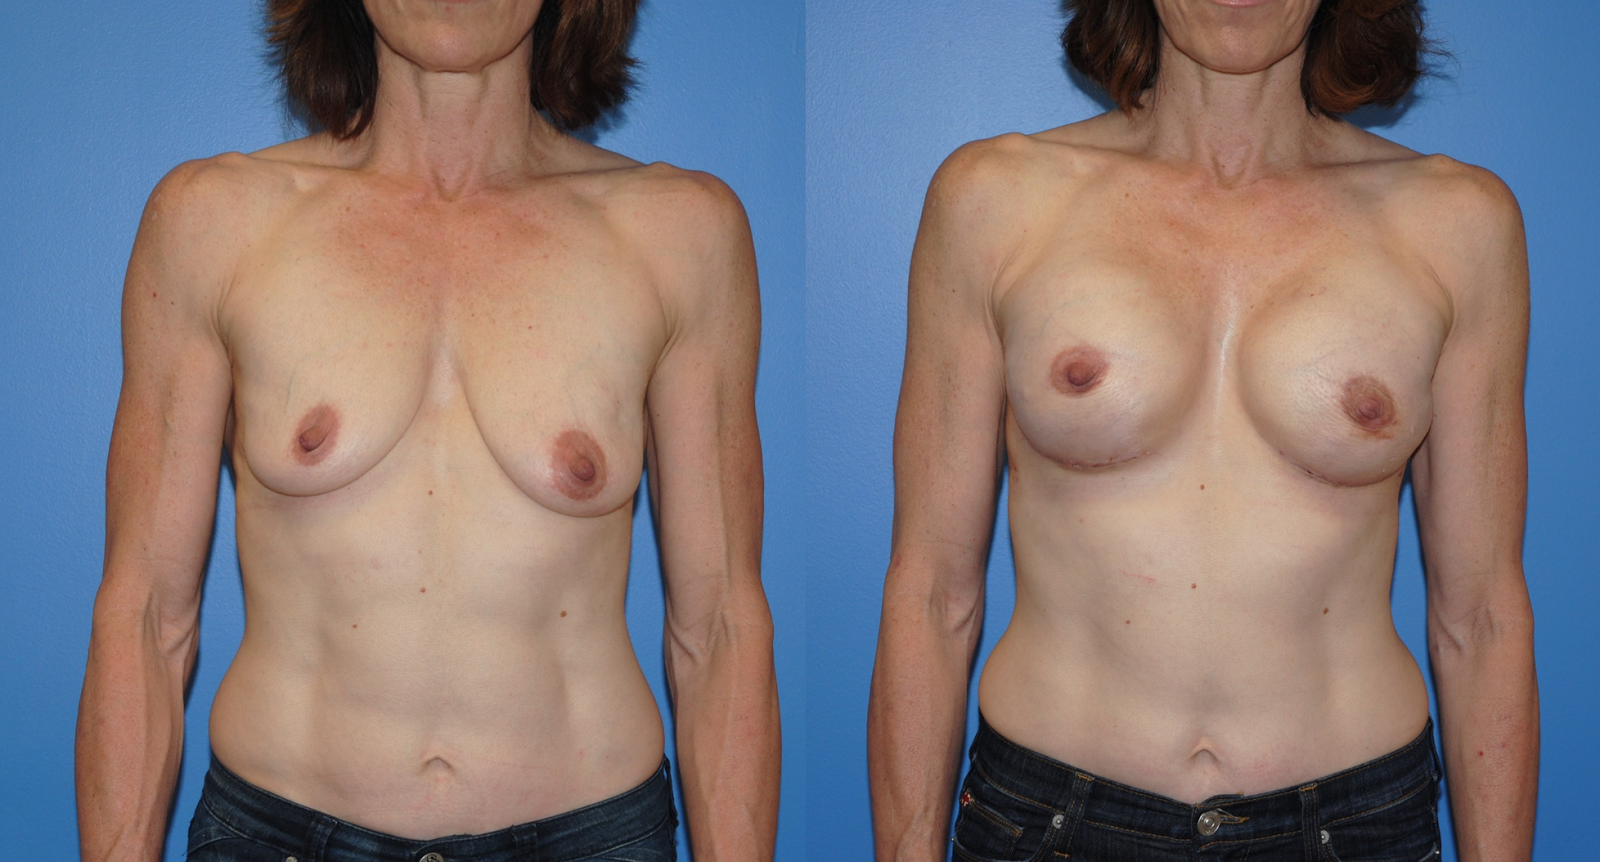 Breast Reconstruction Worth it? Reviews, Cost, Pictures